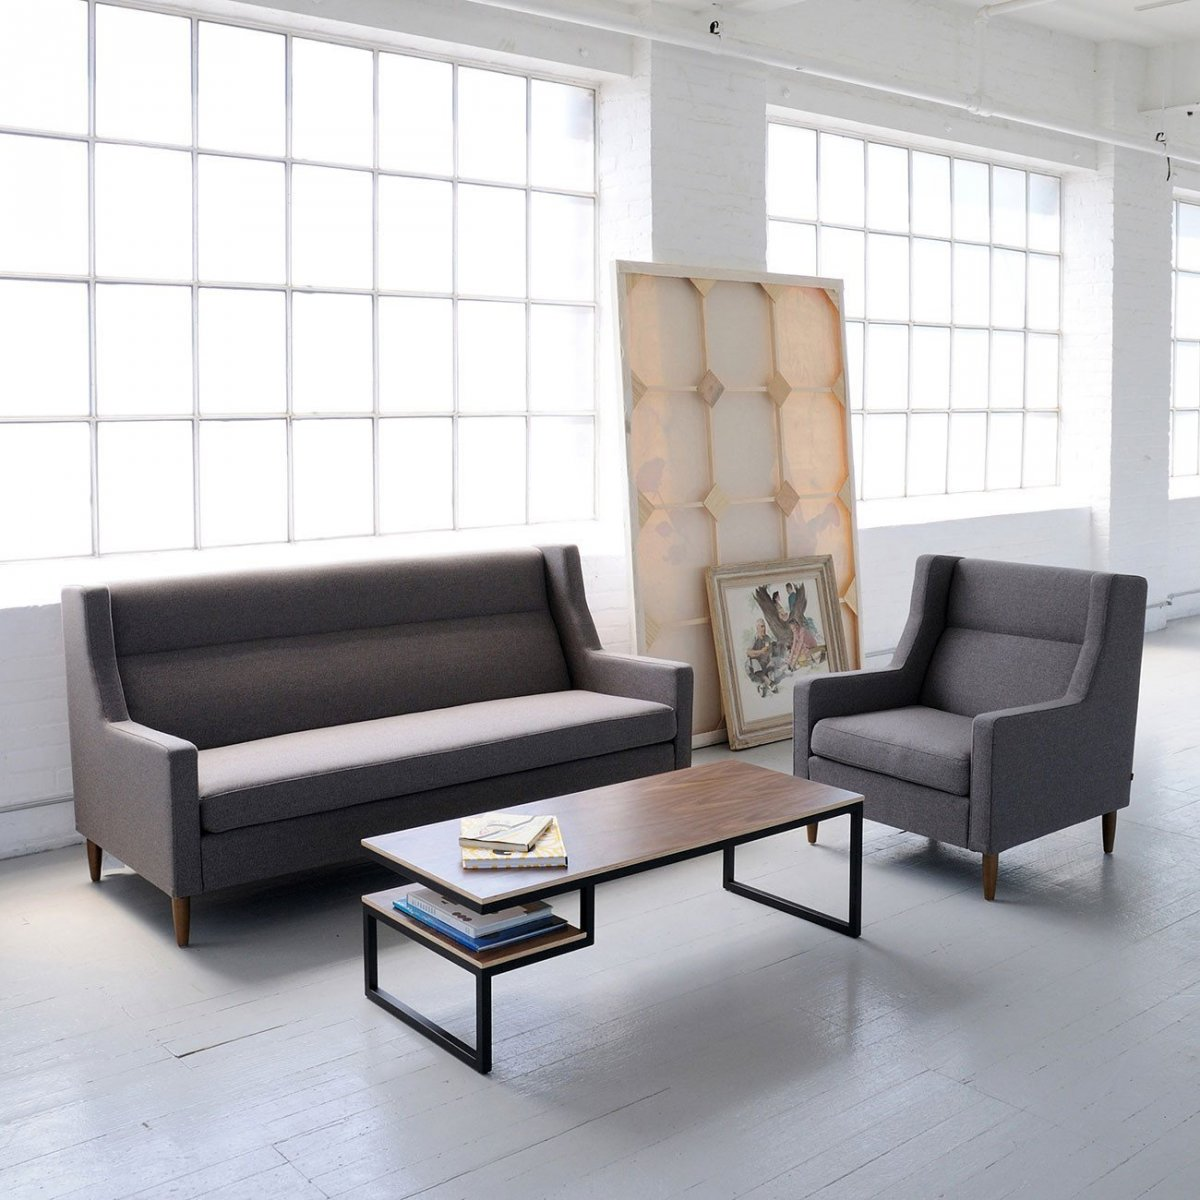 Carmichael Loft Sofa and Chair with Ossington Coffee Table.